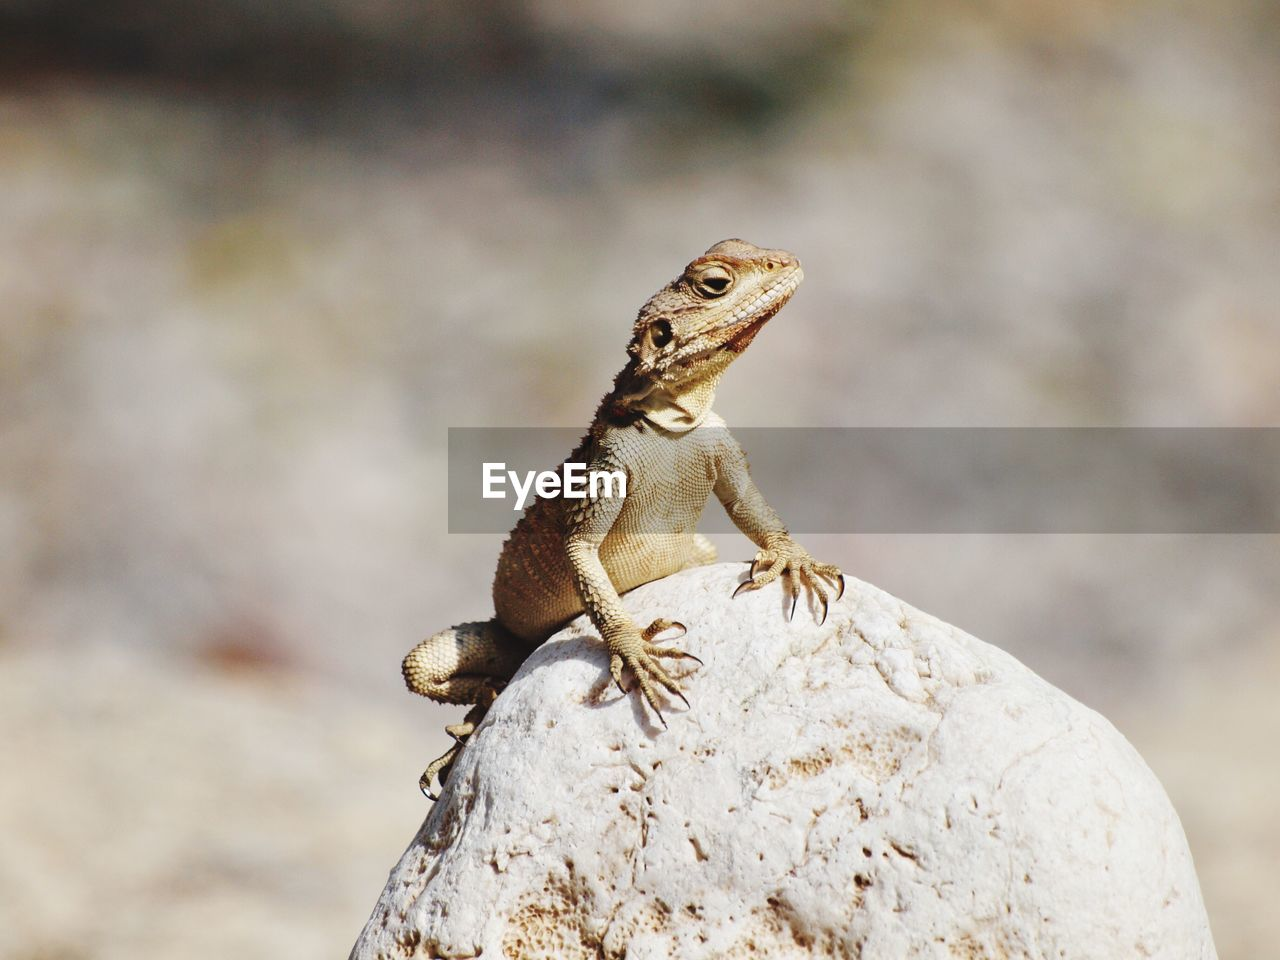 one animal, animals in the wild, rock - object, solid, animal wildlife, animal themes, rock, lizard, animal, focus on foreground, reptile, close-up, no people, day, nature, vertebrate, outdoors, zoology, bearded dragon, side view, iguana